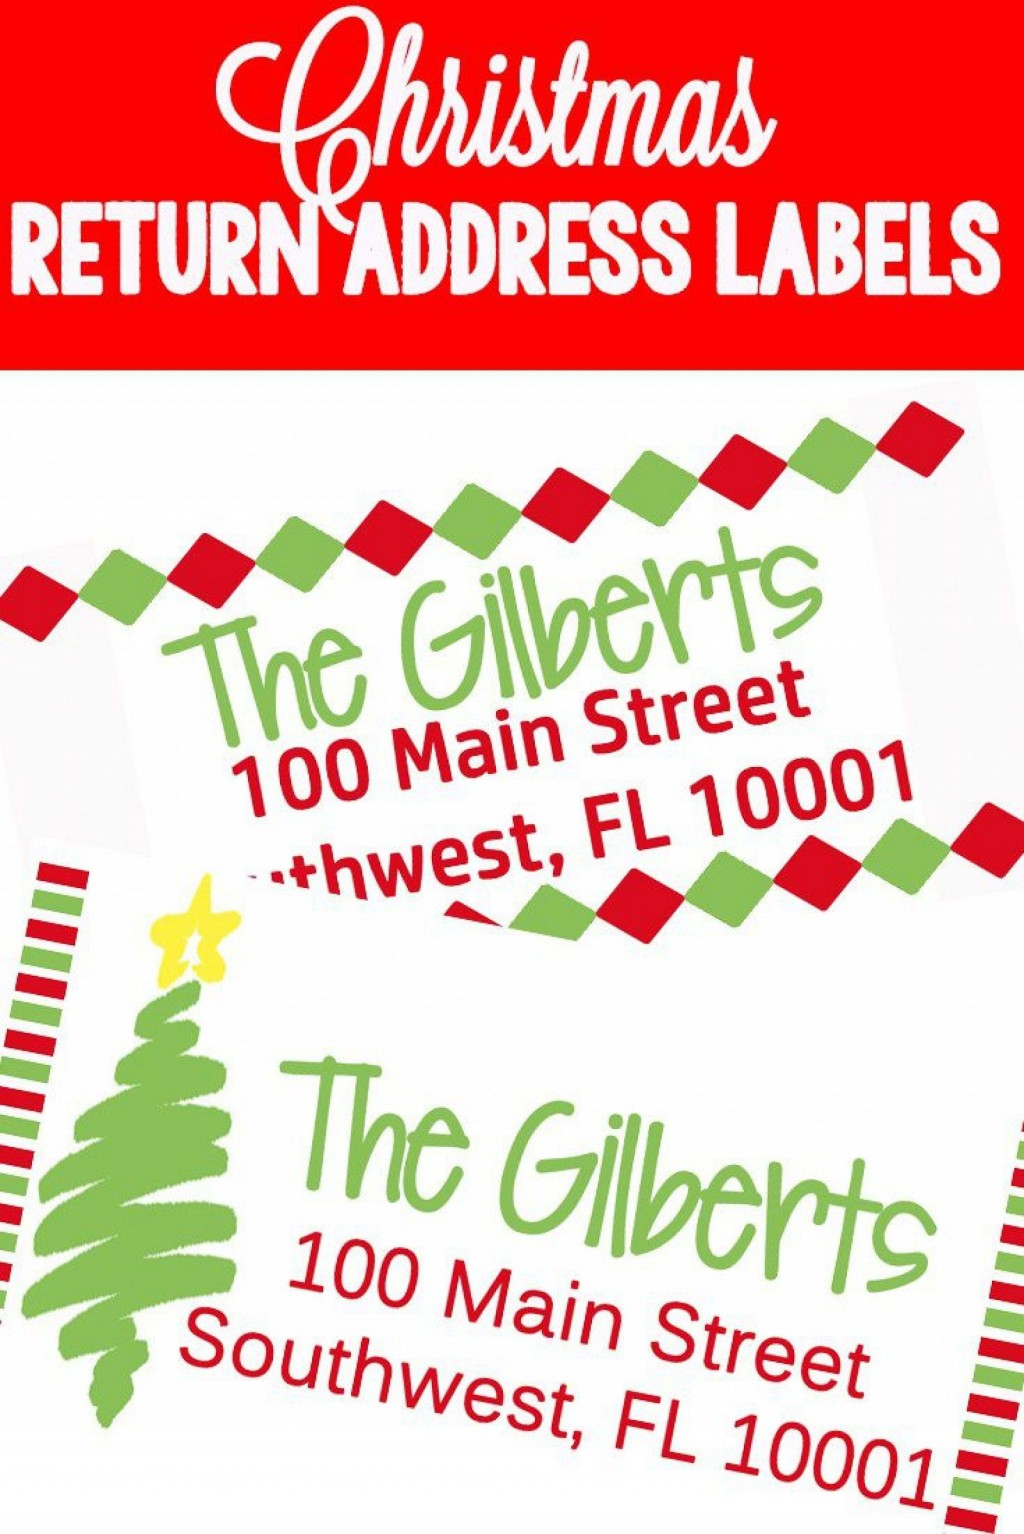 006 Imposing Free Printable Return Addres Label Template High Resolution  Templates ChristmaLarge